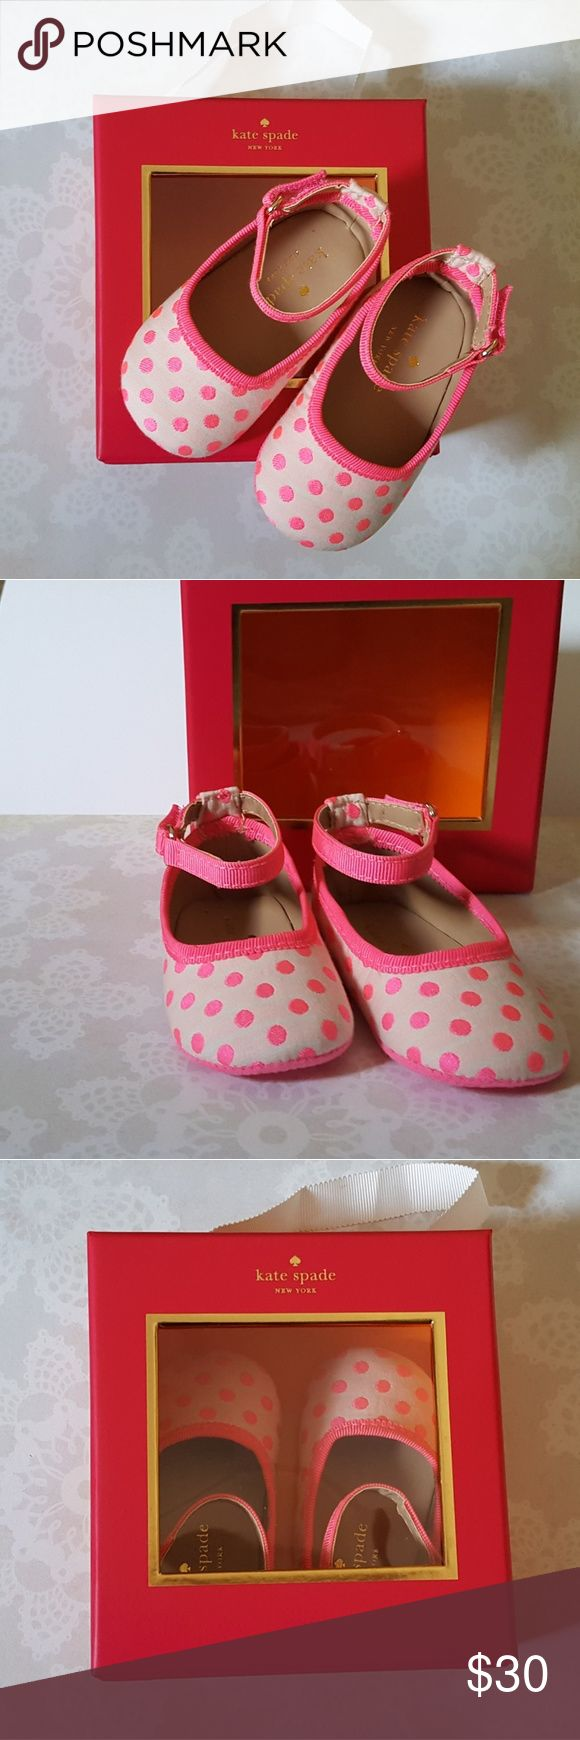 Kate Spade Baby Girl Polka Dot Flat Super cute, Kate Spade Baby Girl Pink Polka Dot Flats. Perfect baby shower gift or for any occasion. Dress your baby girl in style! Kate Spade Shoes Baby & Walker